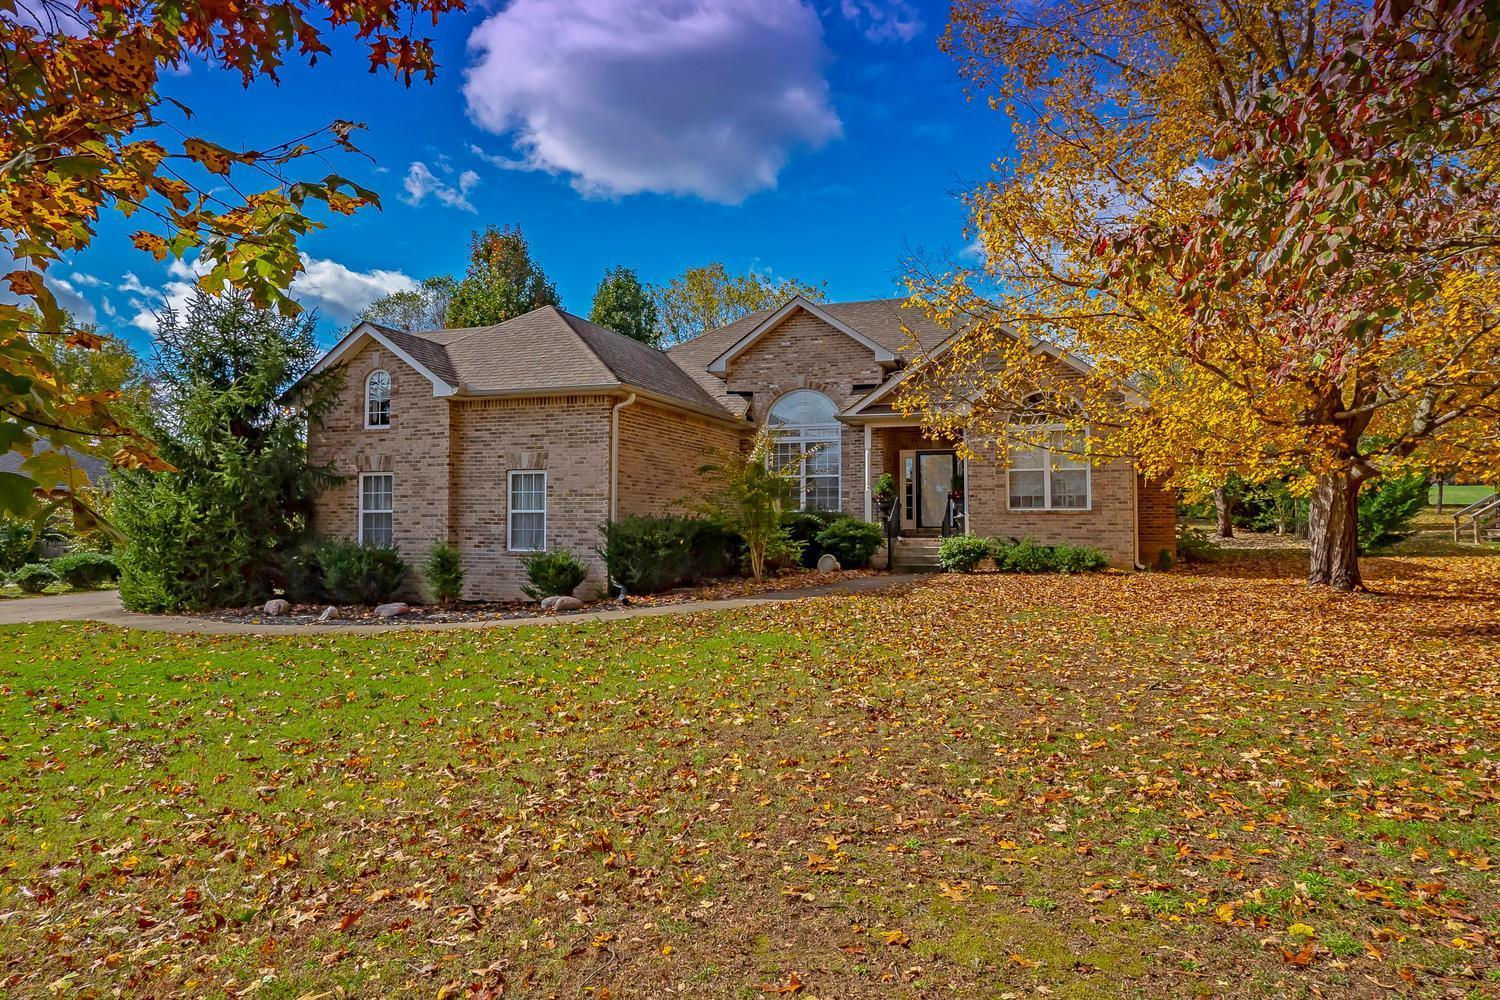 7116 Fernvale Rd, Fairview, Tennessee